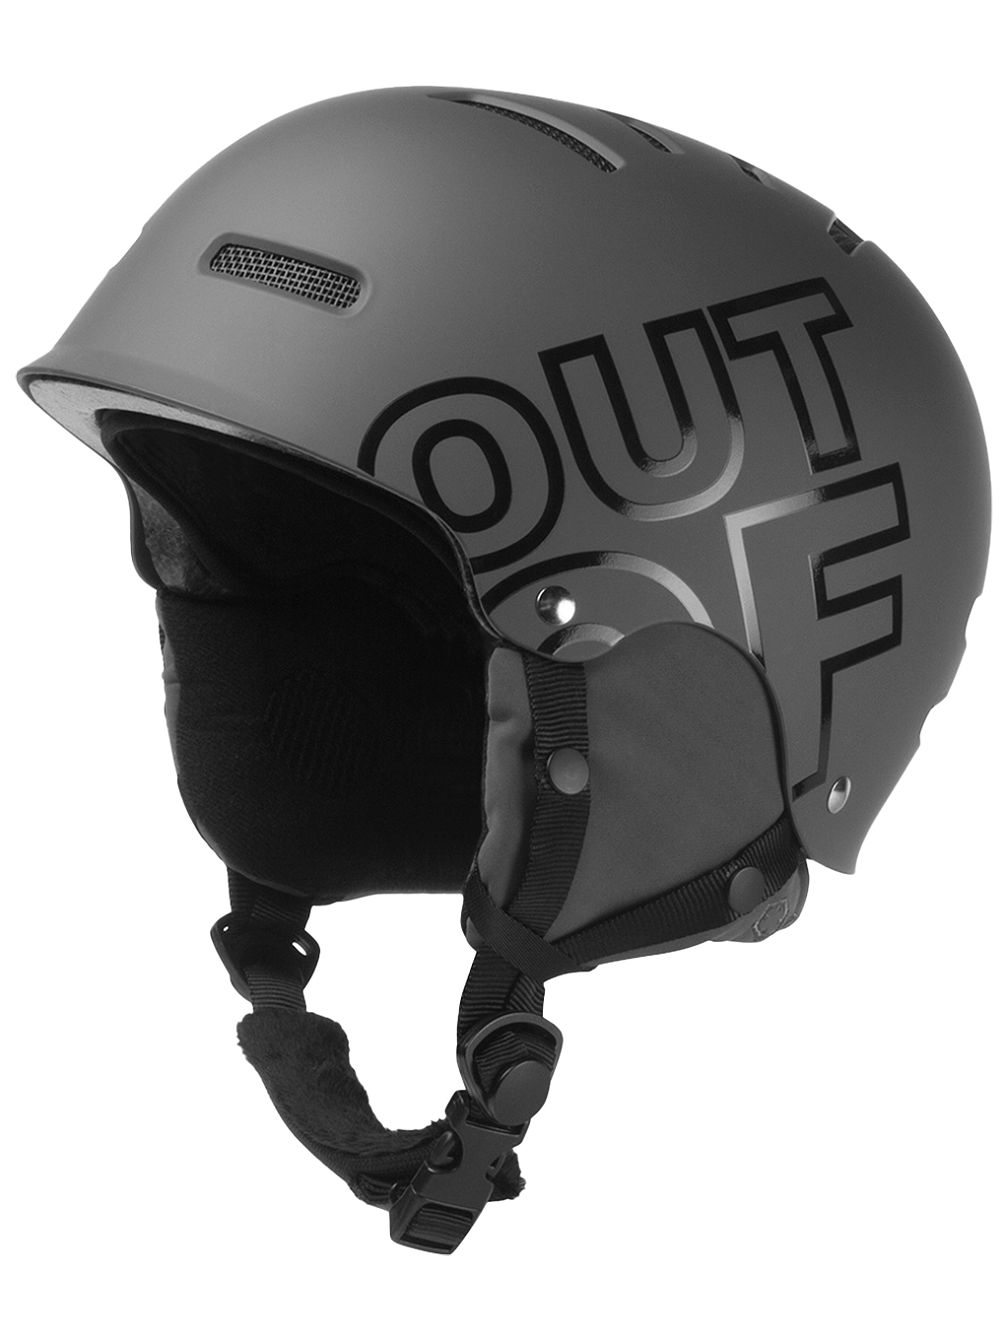 Wipeout Helm